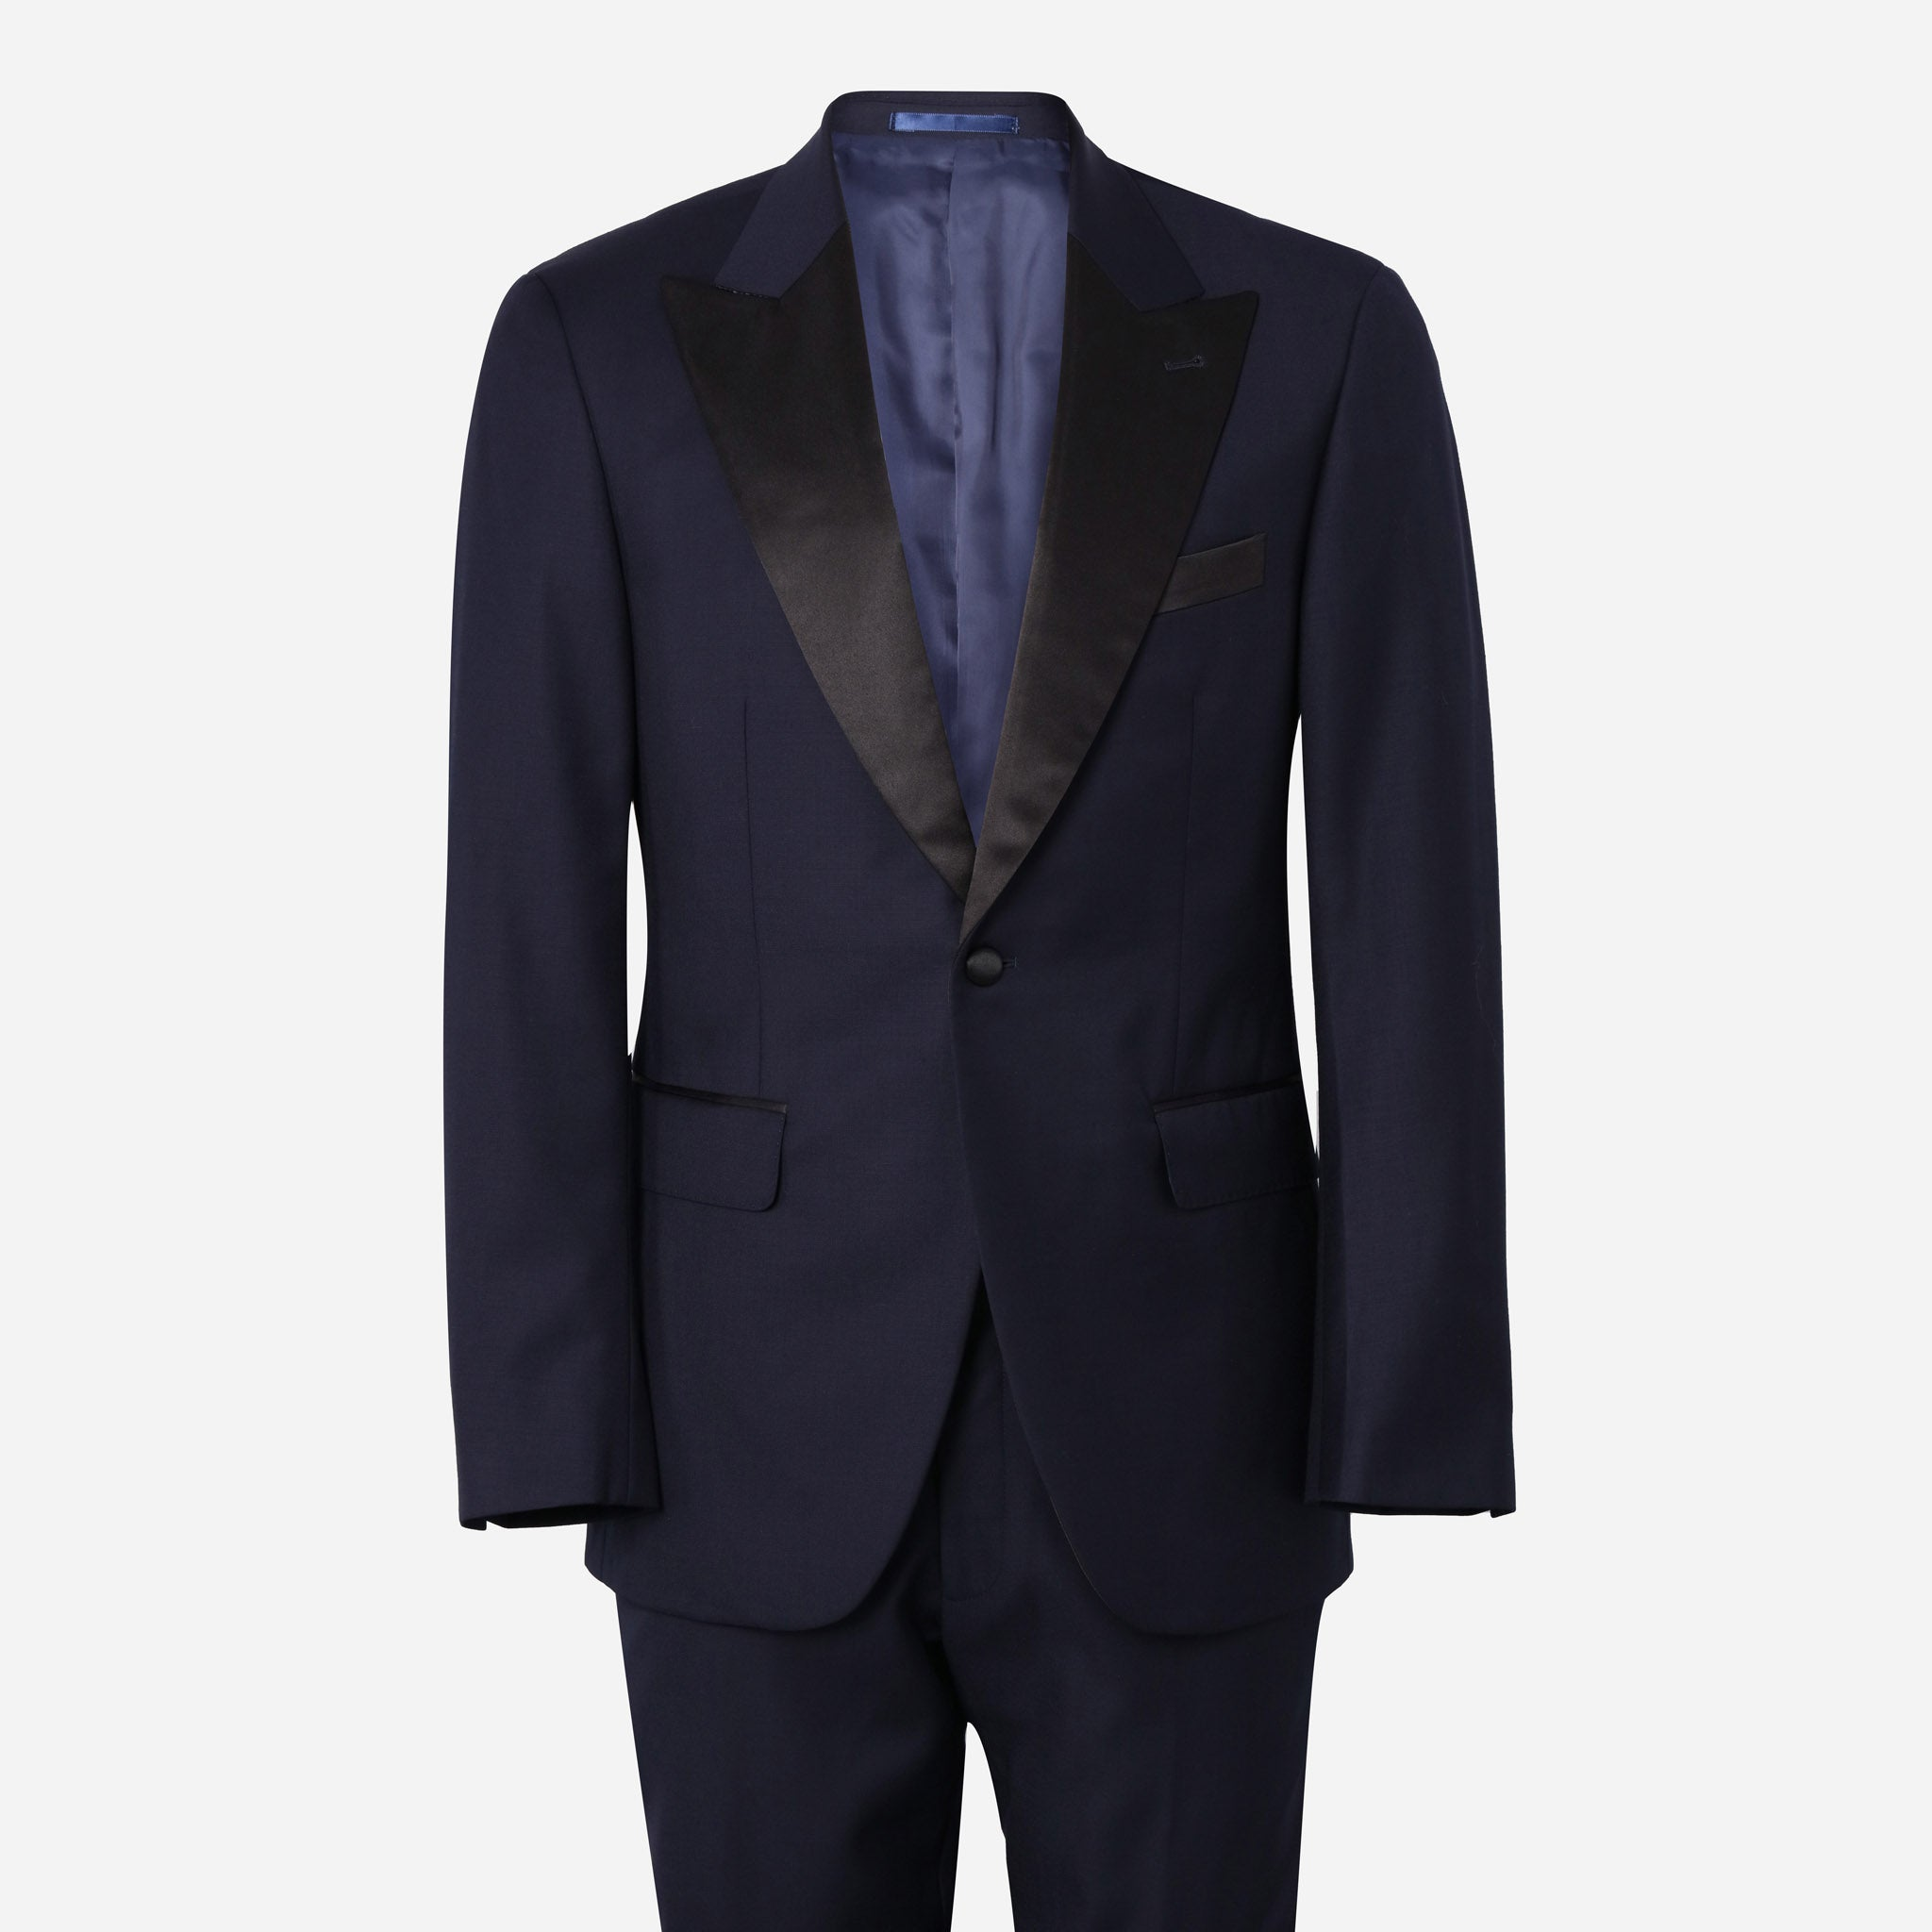 Emmanuel Everyday Tuxedo in Navy